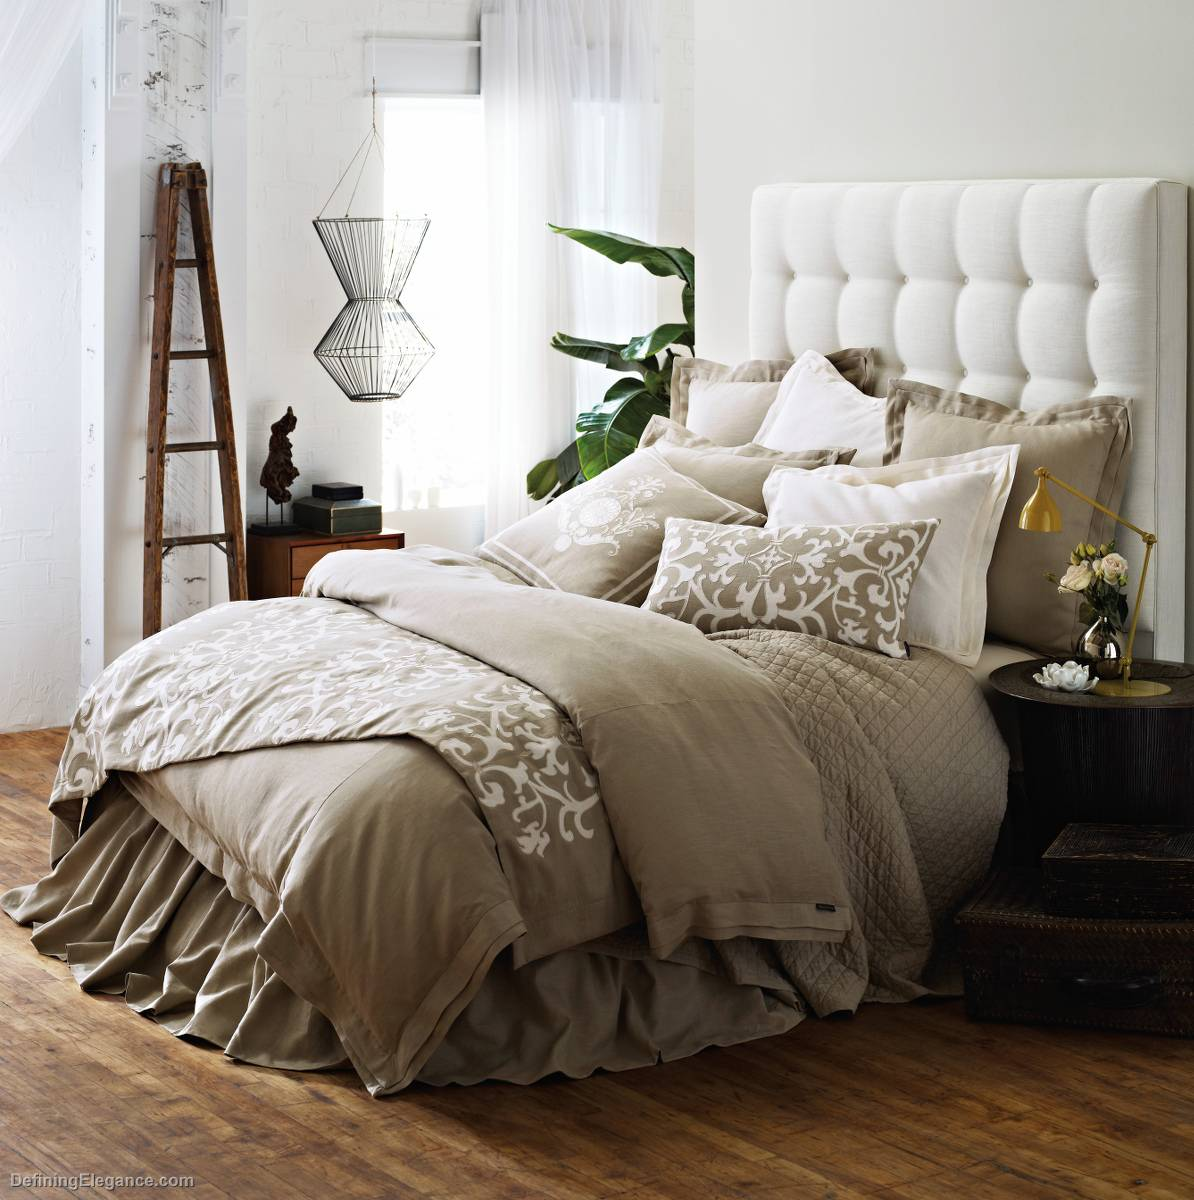 Etonnant Lili Alessandra Jon L Bedding Flax Linen With Tailored Double Flange  Collection